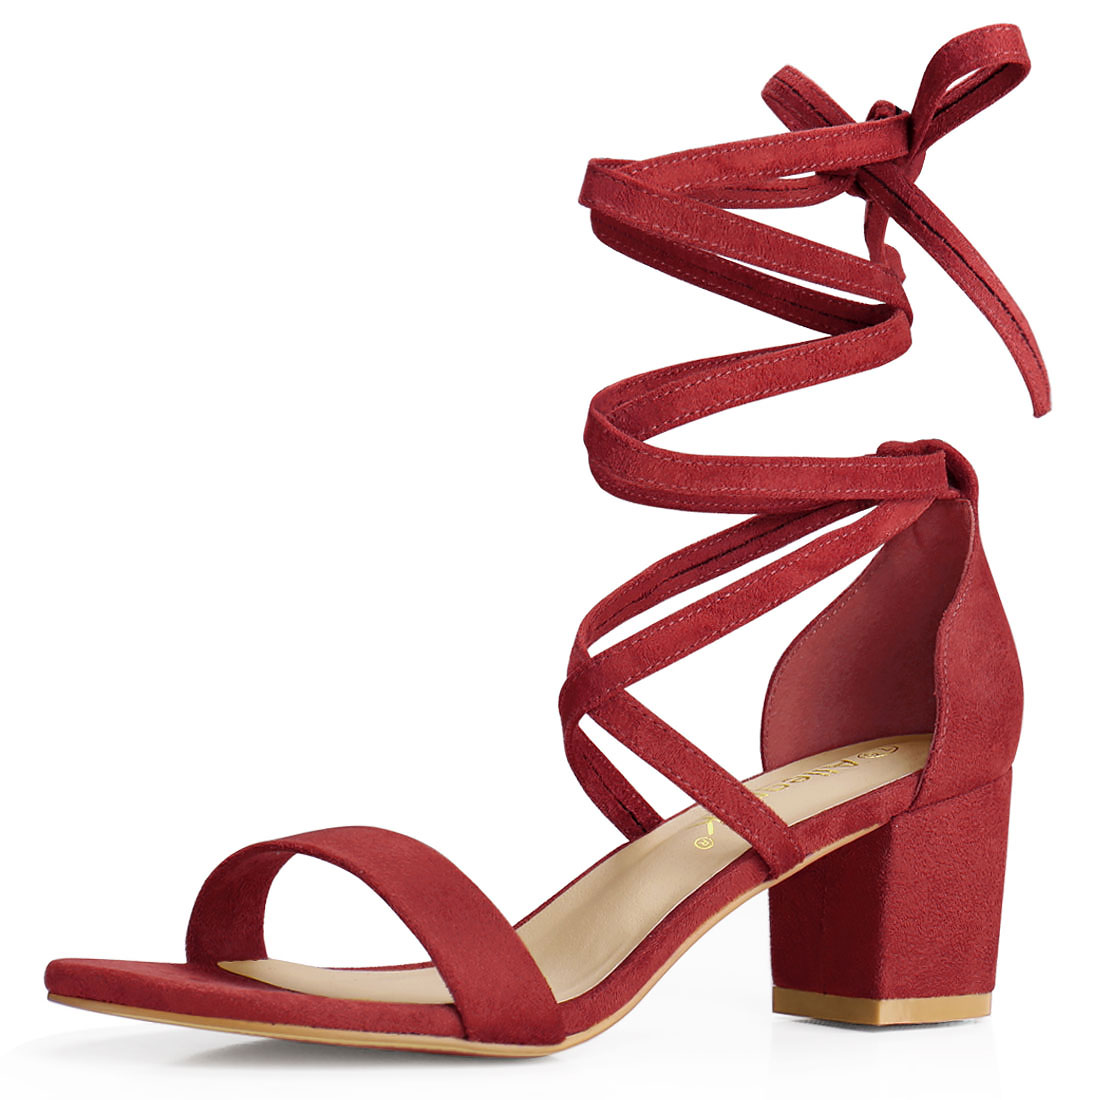 Allegra K Women's Lace Up Mid Chunky Heeled Sandals Red-Faux Suede US 7